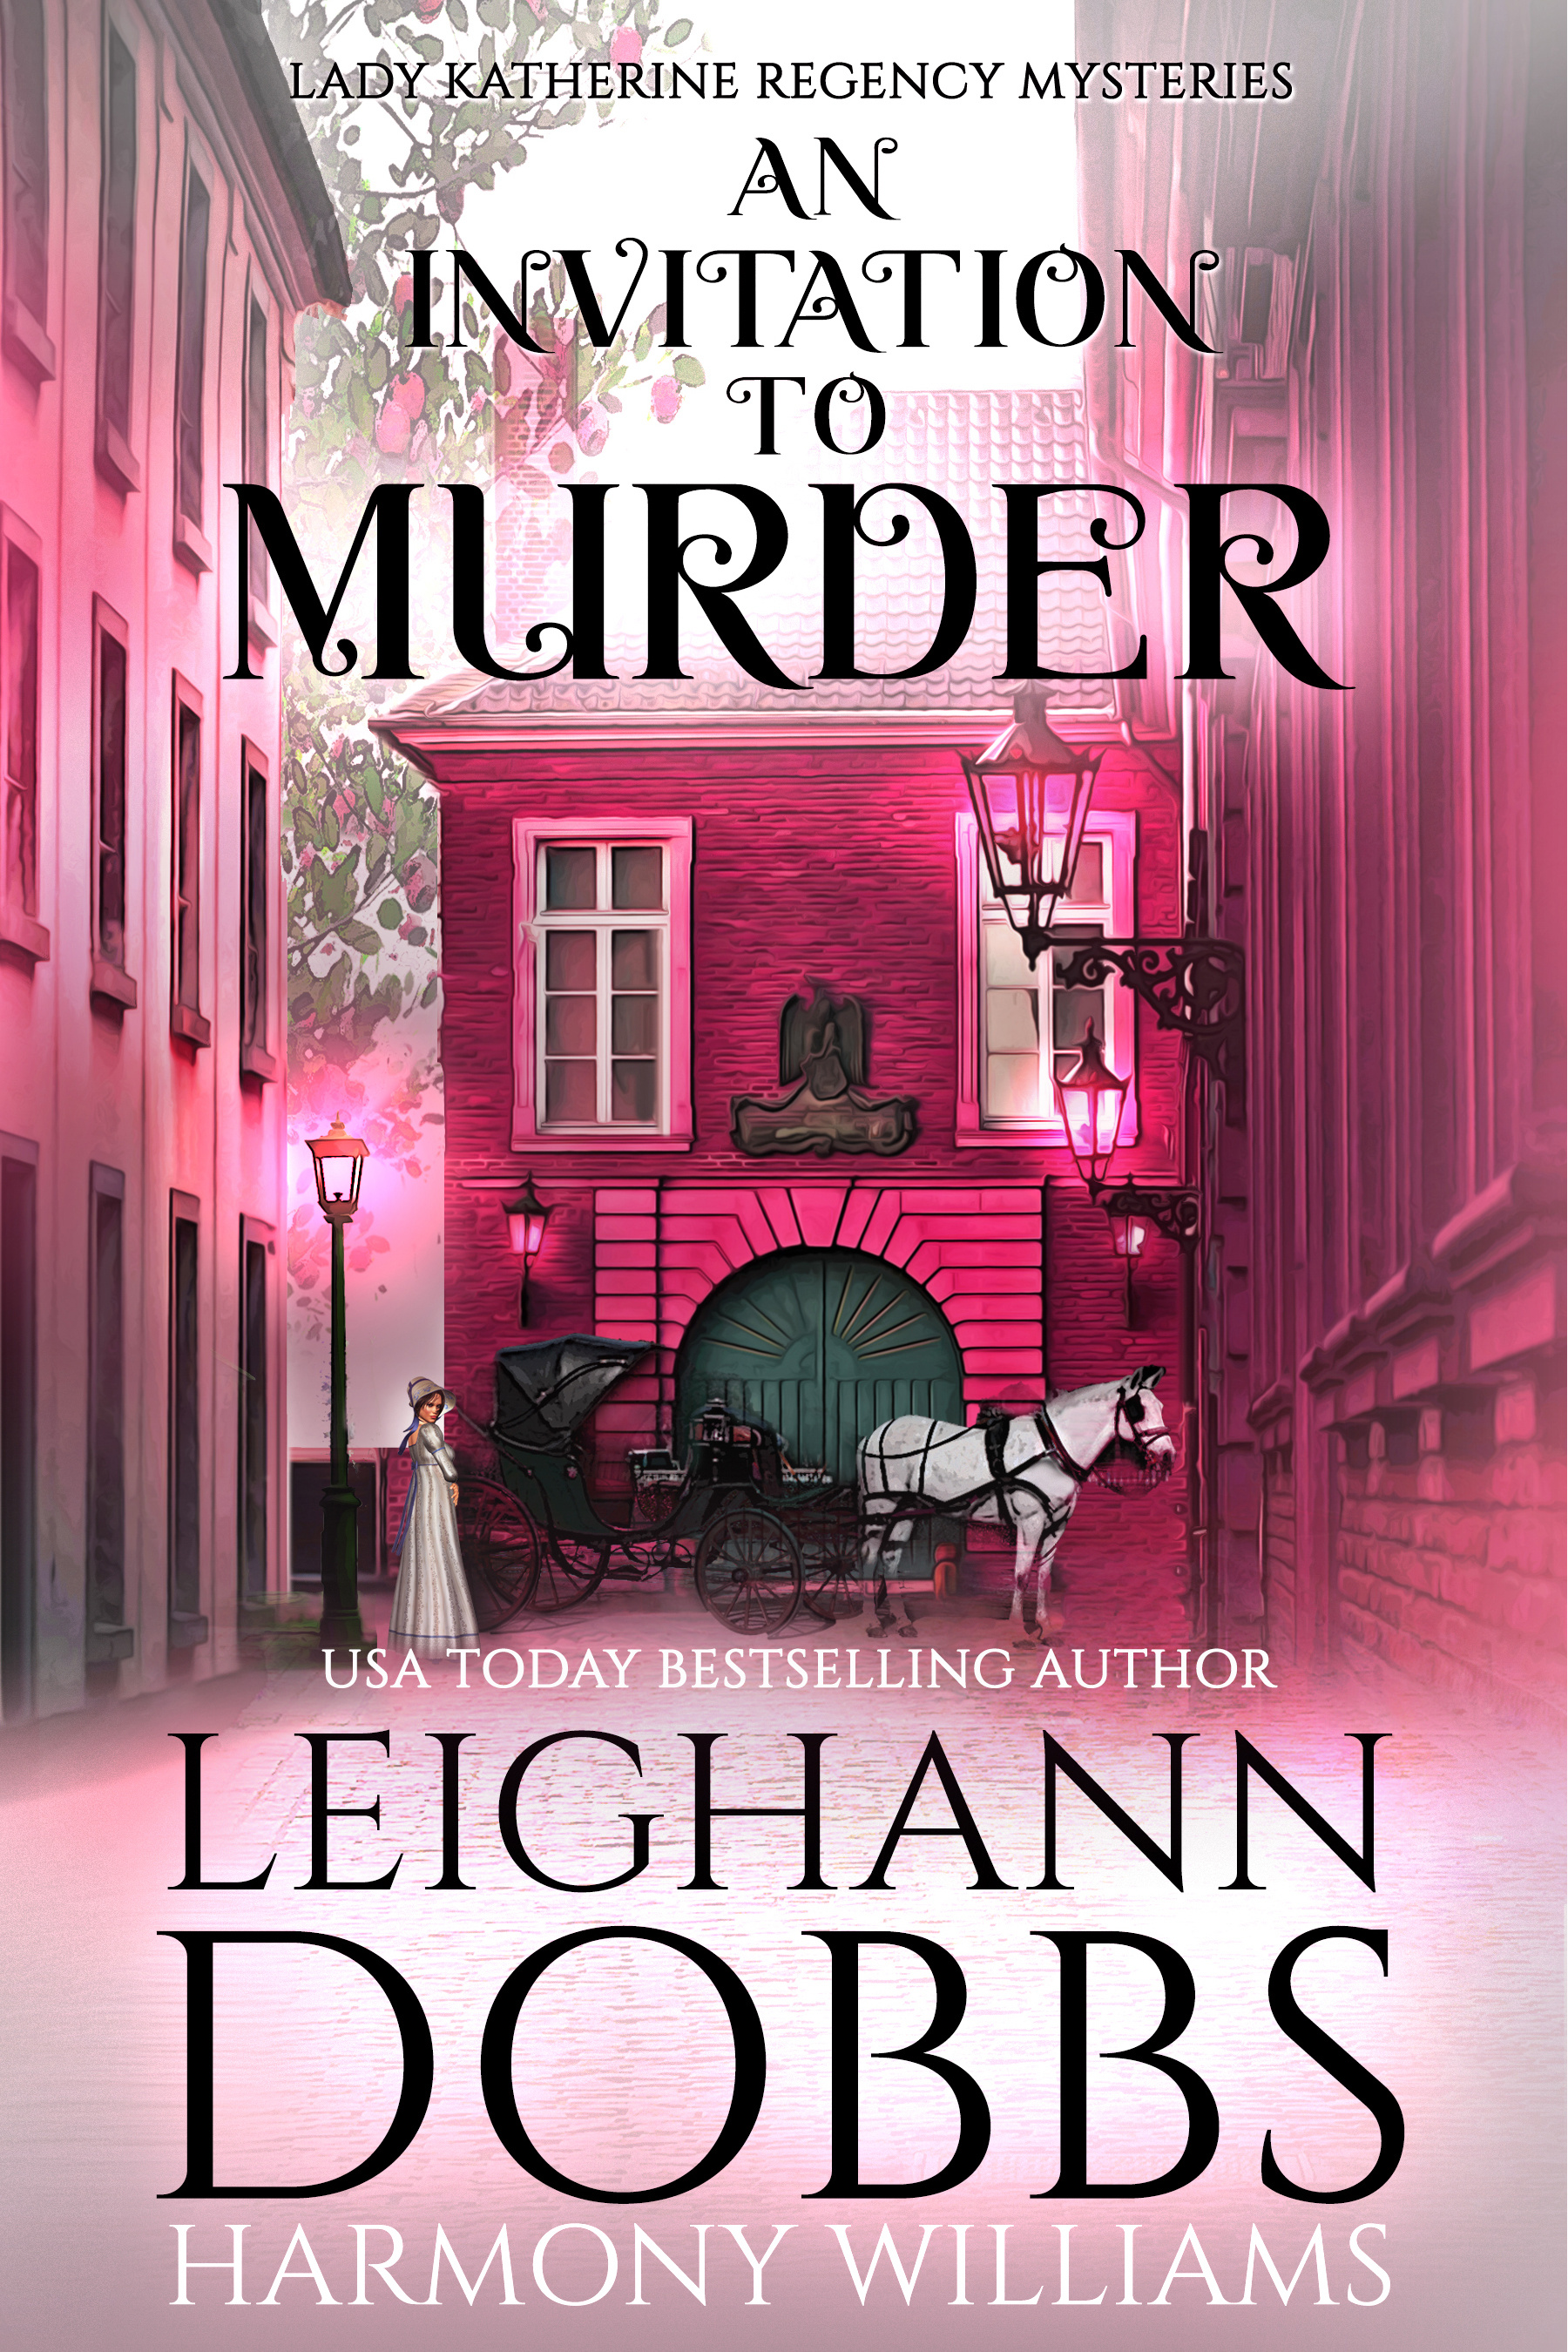 New release an invitation to murder lady katherine regency historical cozy mystery novel lady katherine regency mysteries book 1 stopboris